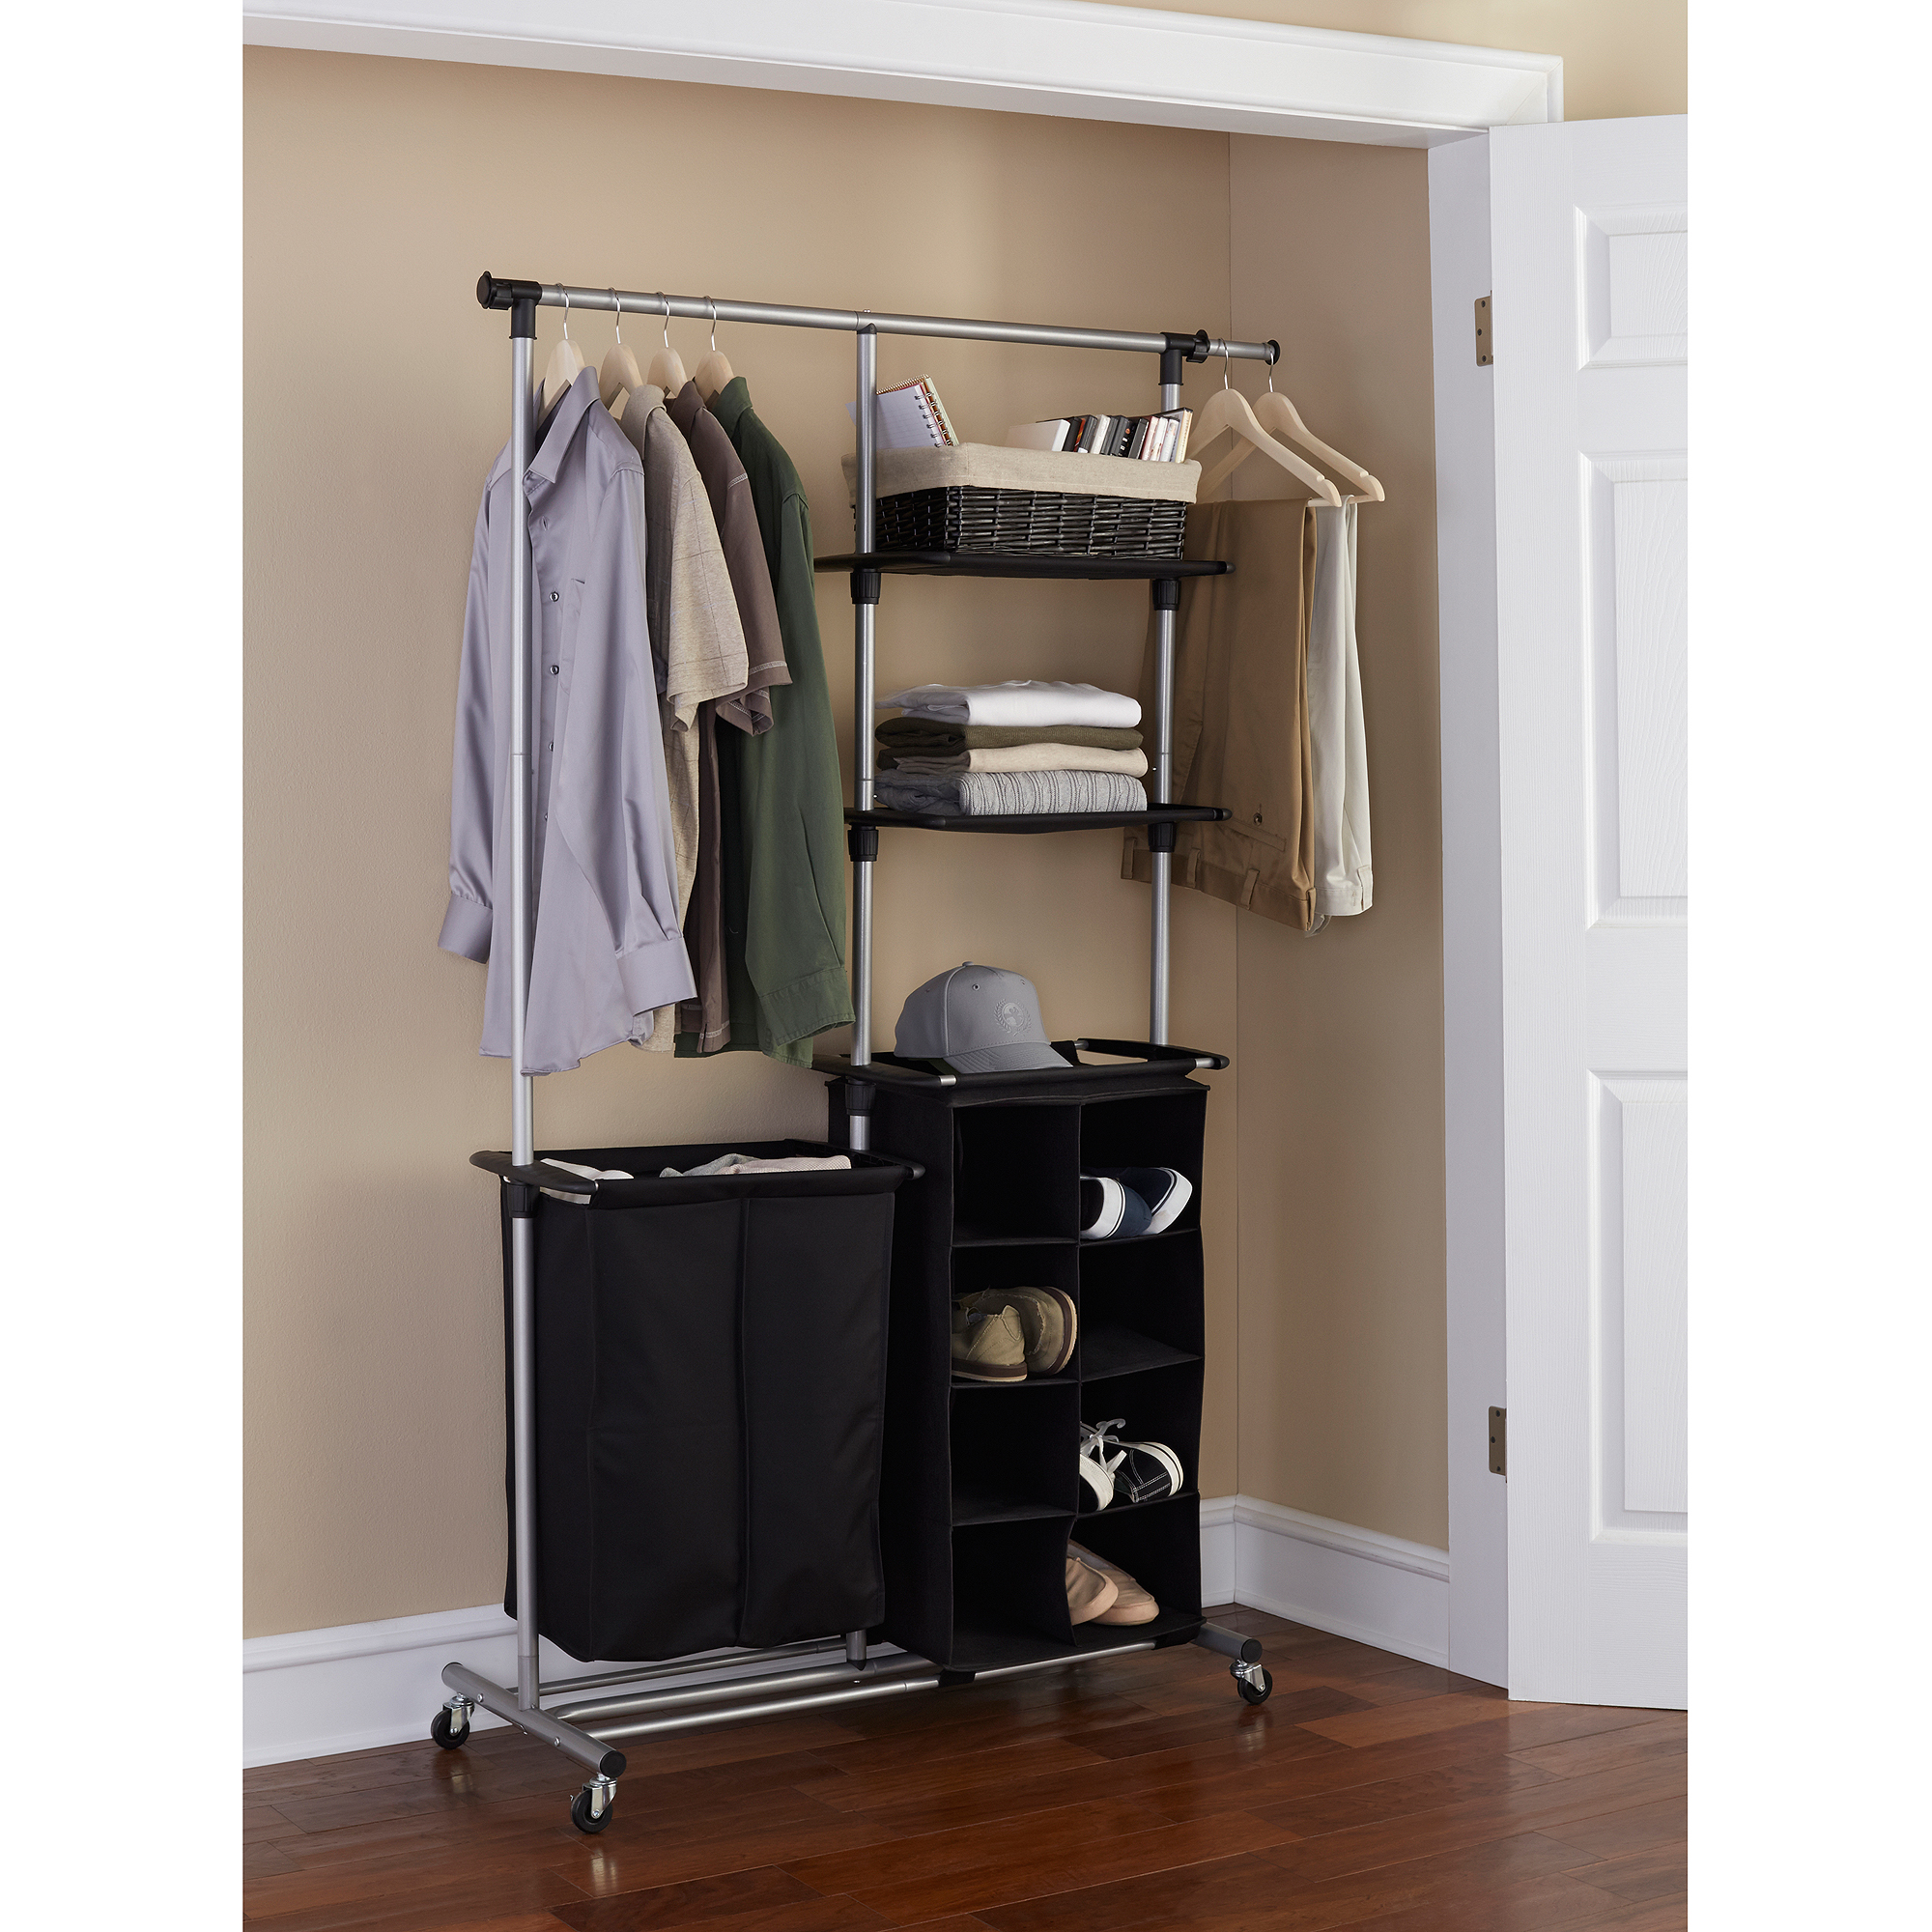 Mainstays Multi-Function Garment Rack, Black/Silver